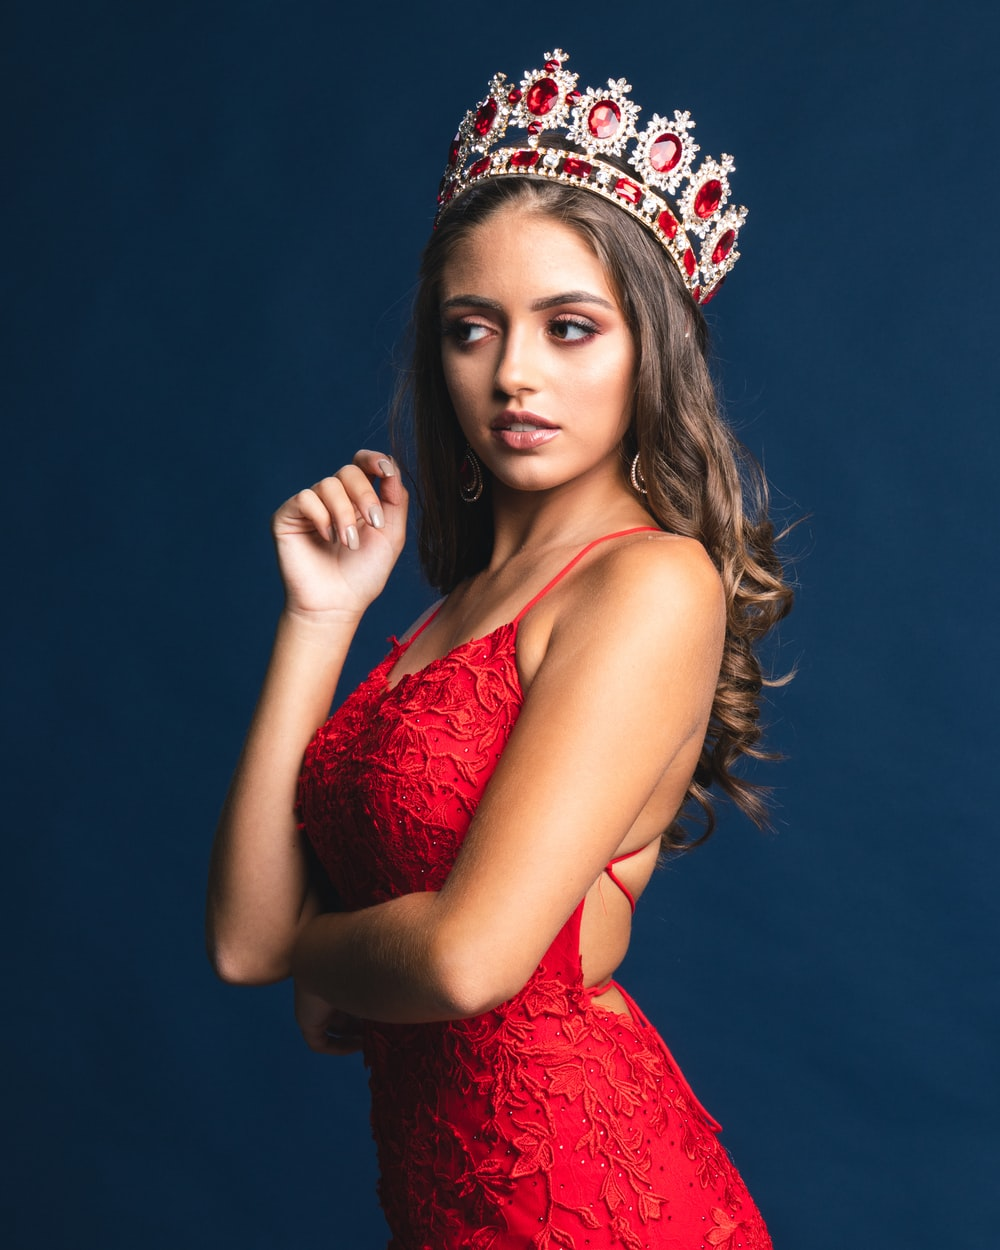 woman with red crown